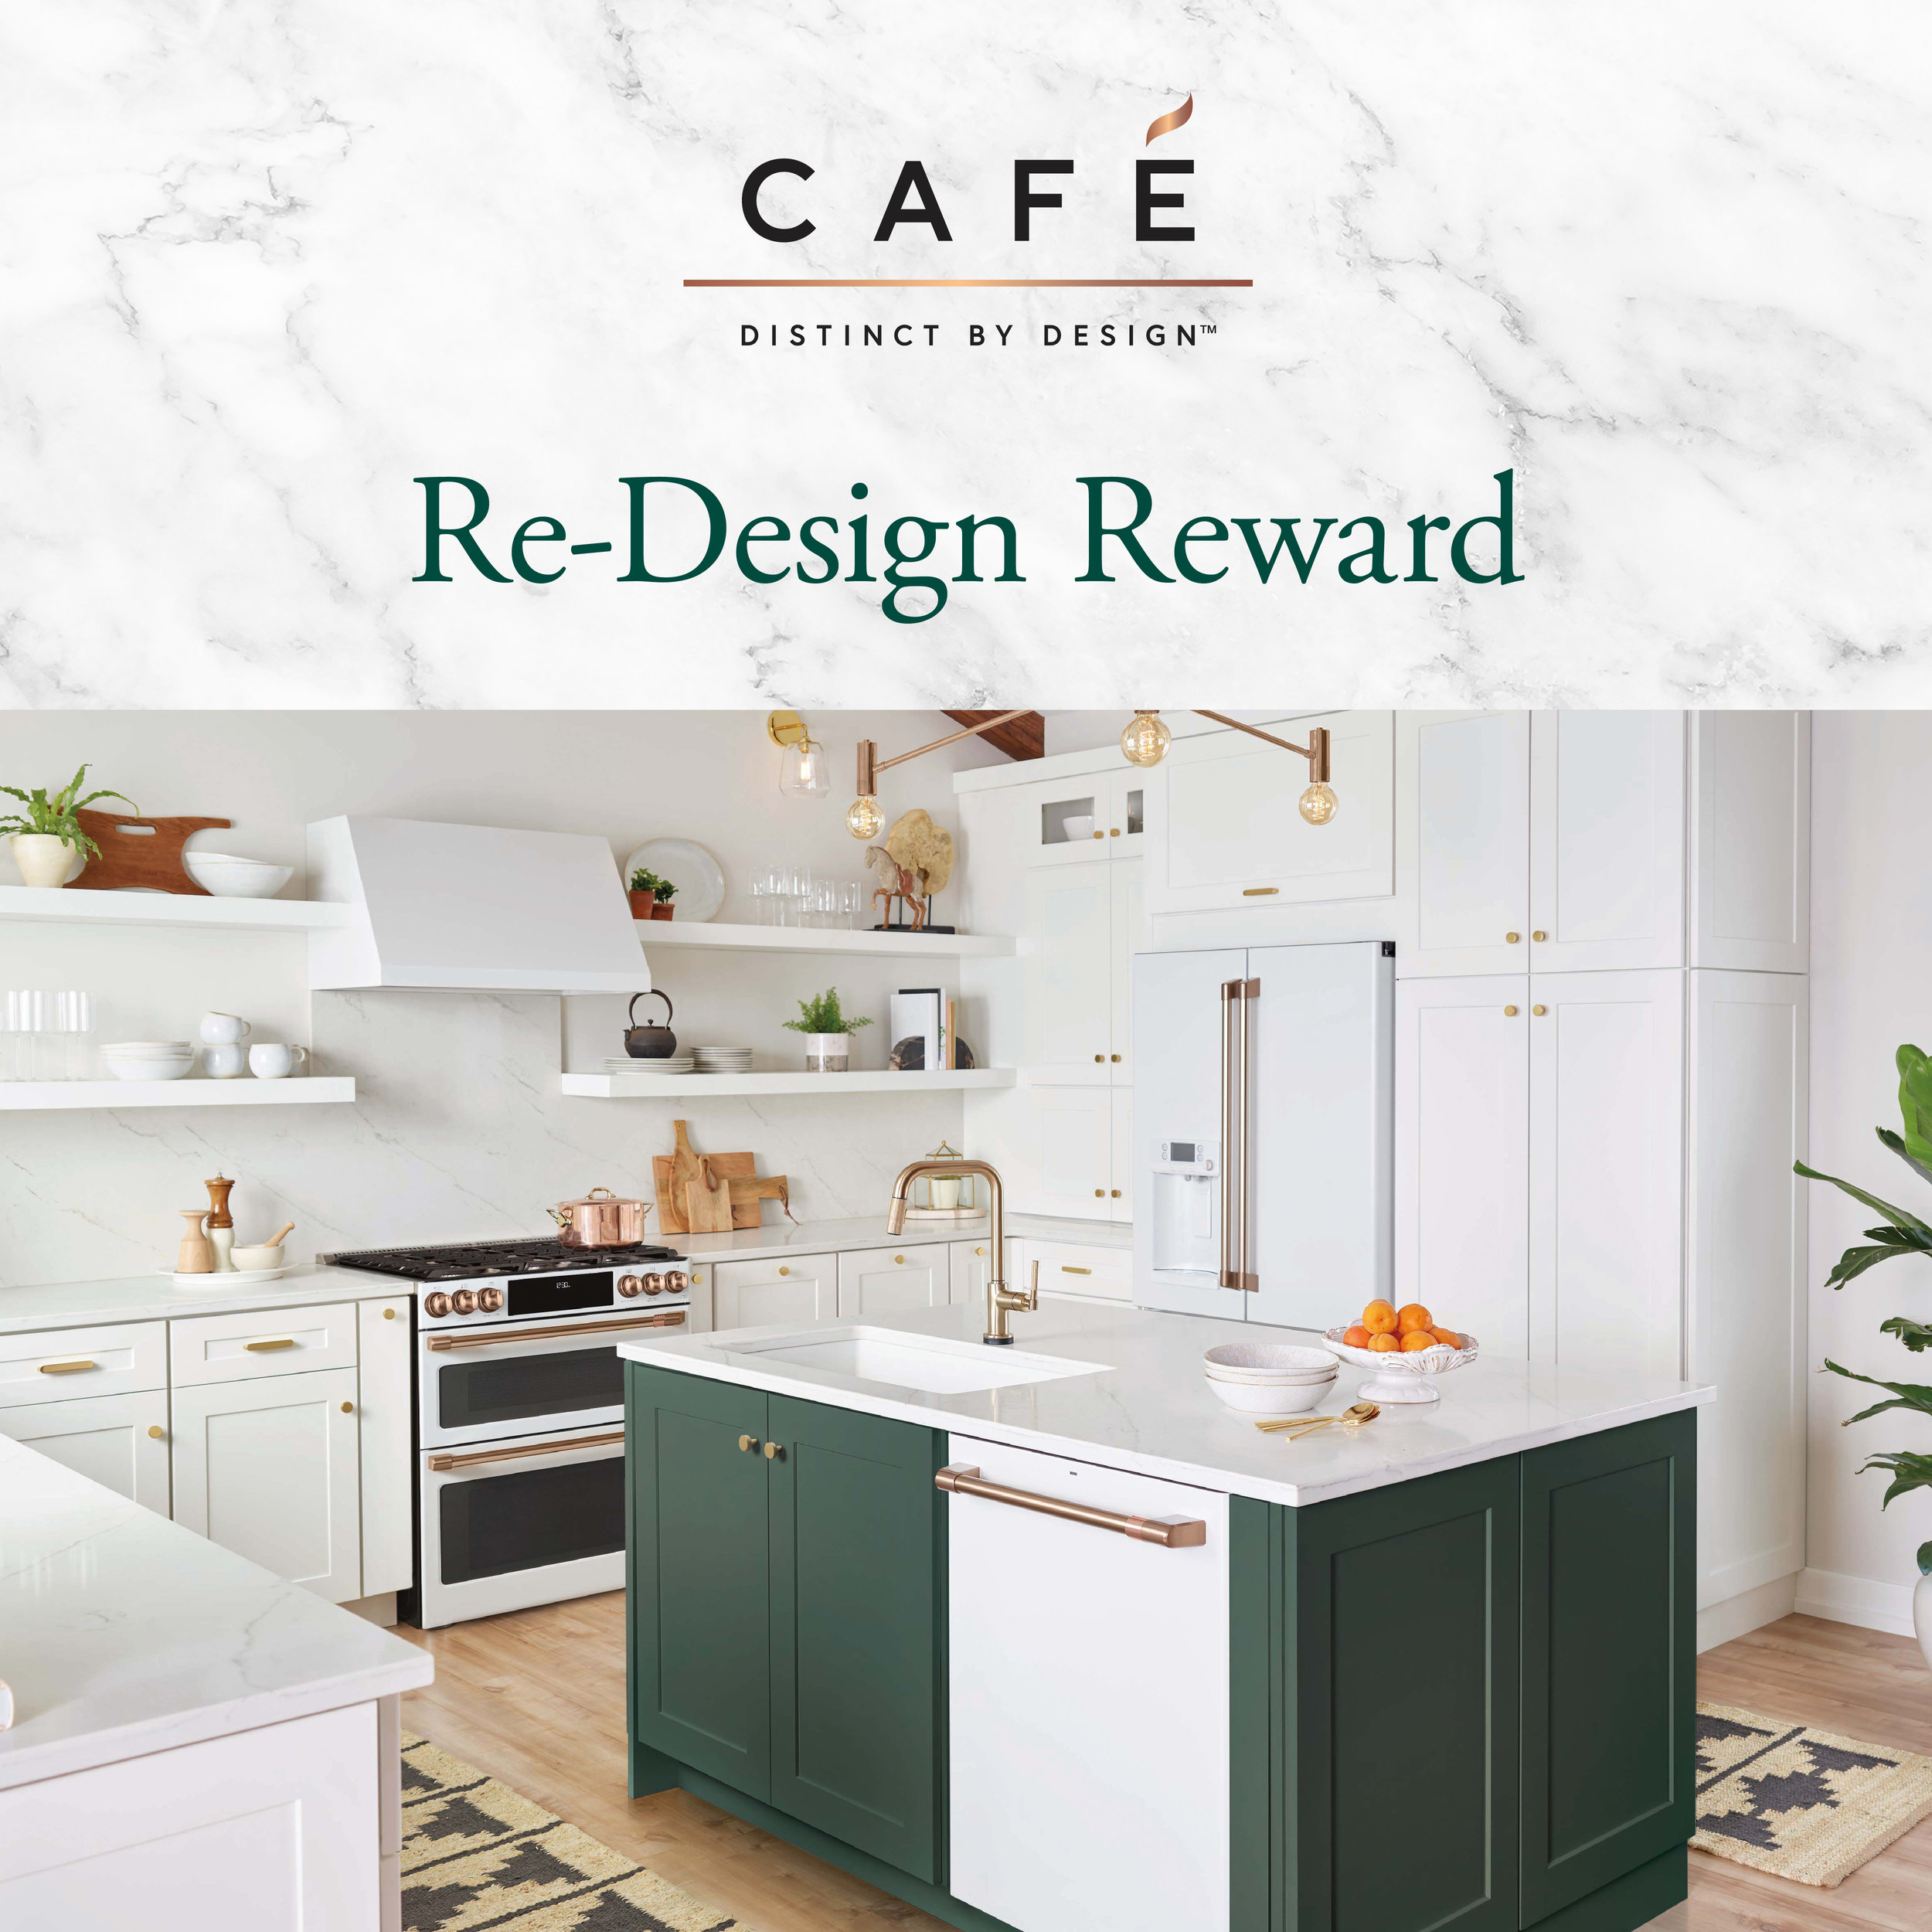 July 2nd to September 30th - Save 15% on any Cafe Appliance + receive a FREE dishwasher with the purchase of an eligible refrigerator and range. Visit us for more details!